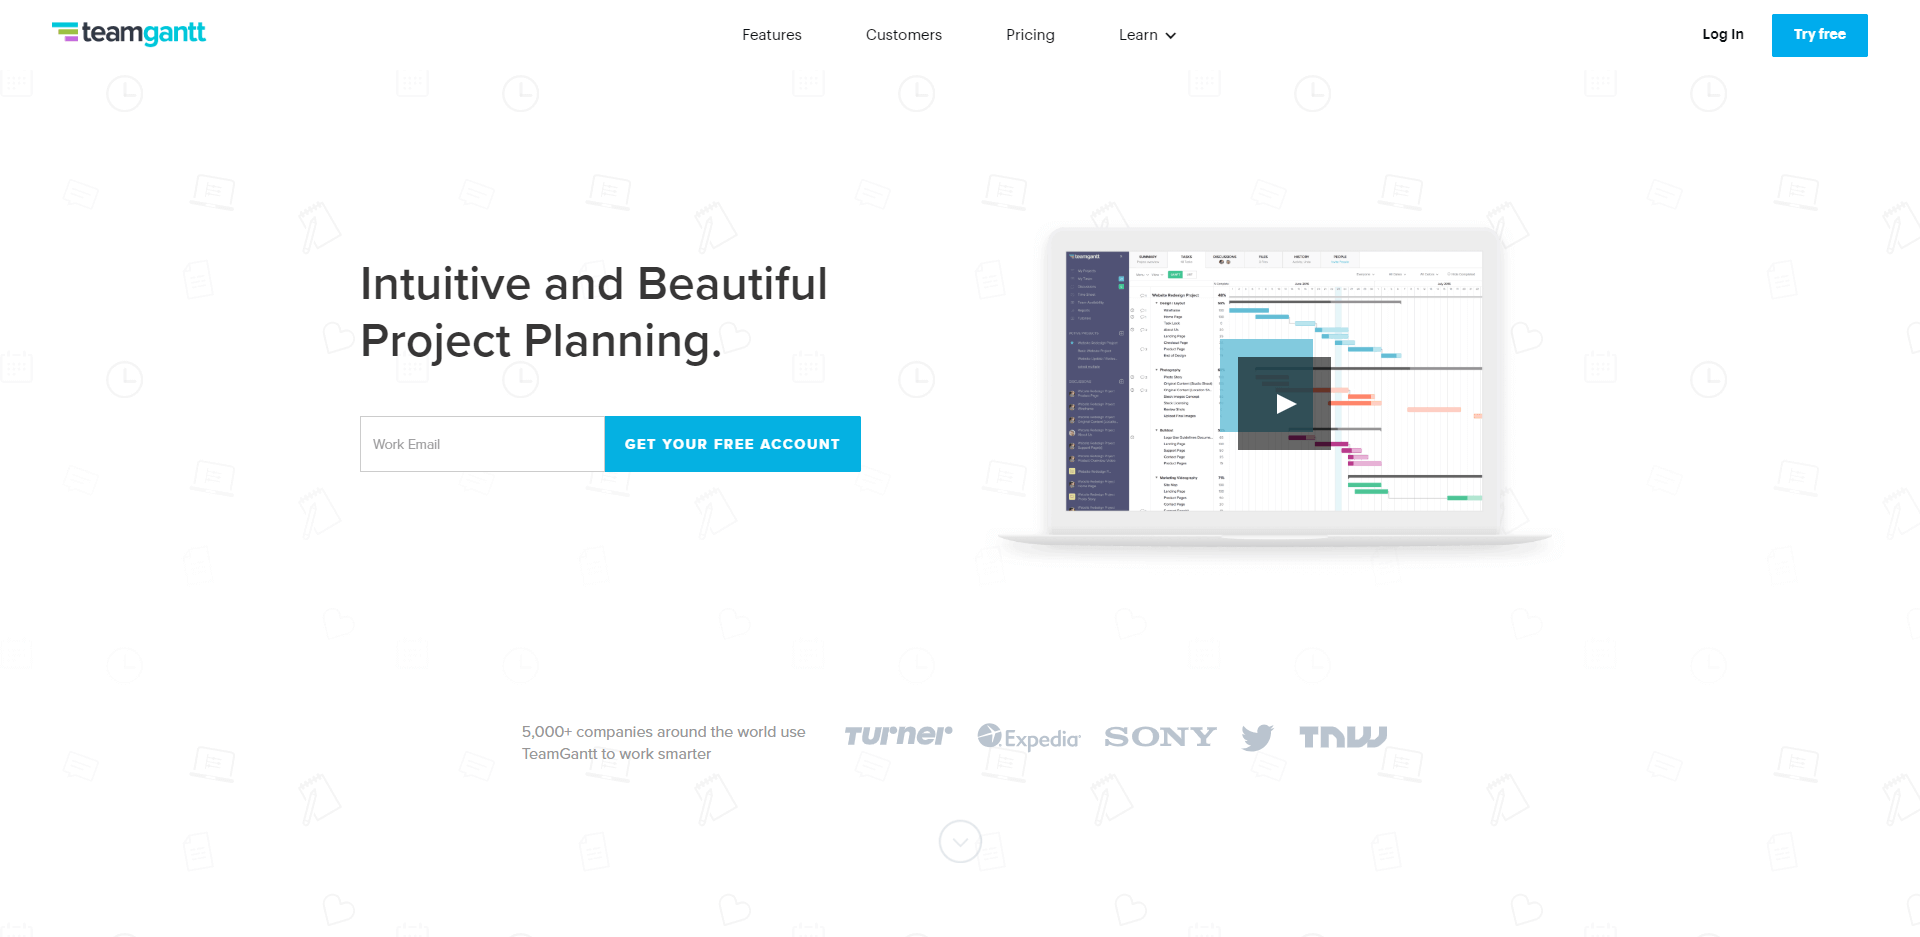 TeamGantt is an intuitive and beautiful project planning tool